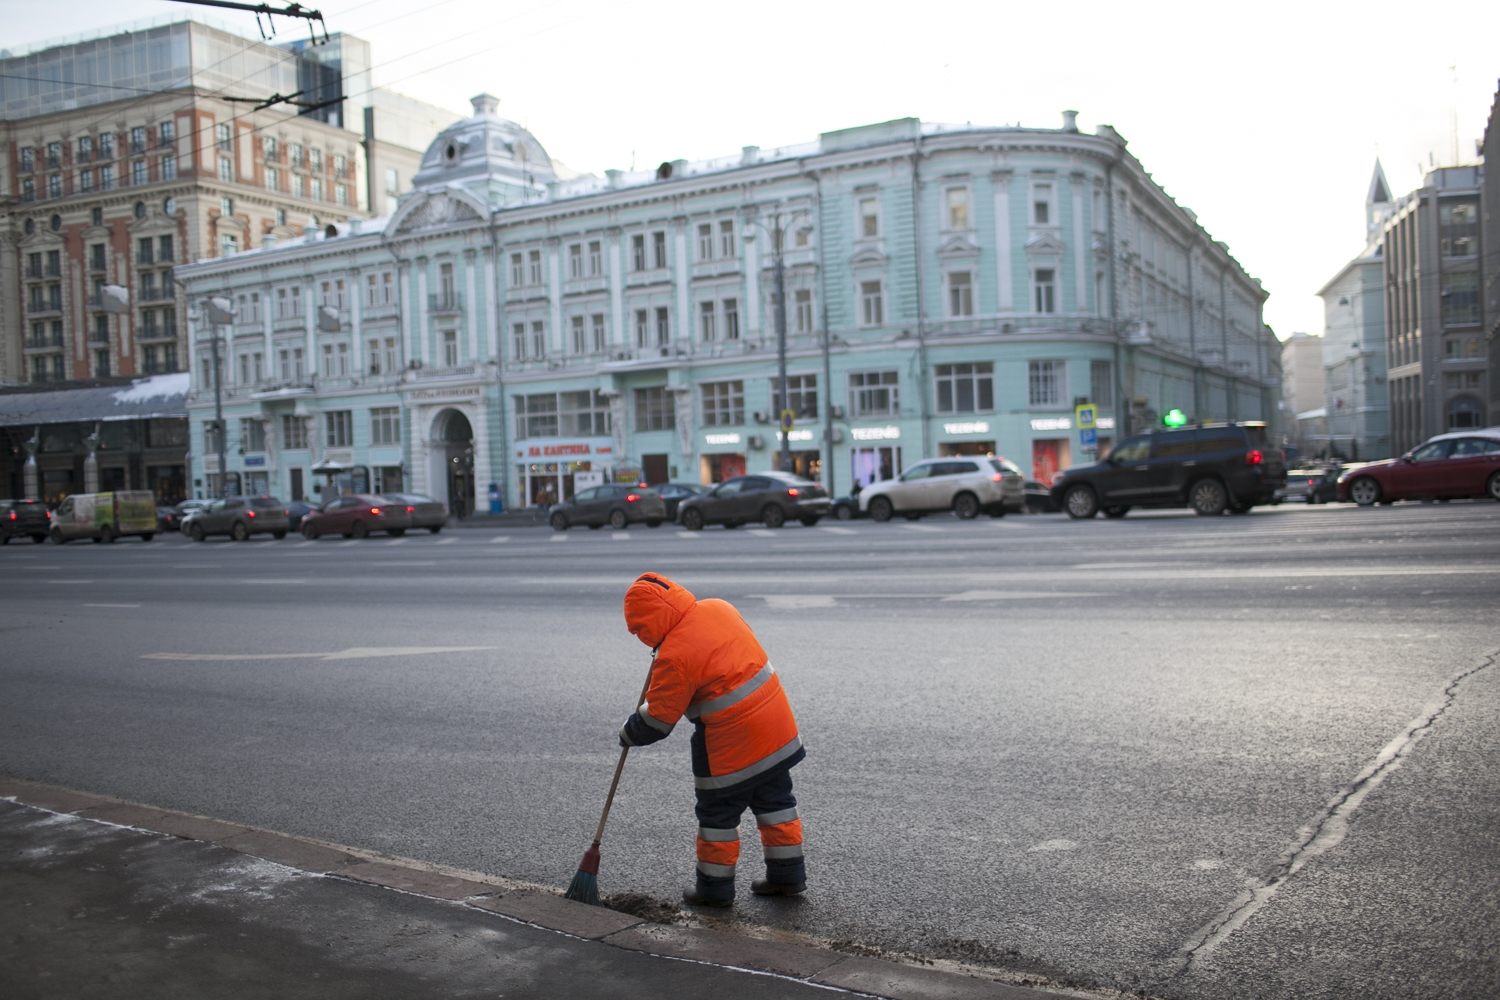 A labor migrant sweeps Tverskaya Street in Moscow. (Photo: David Trilling)